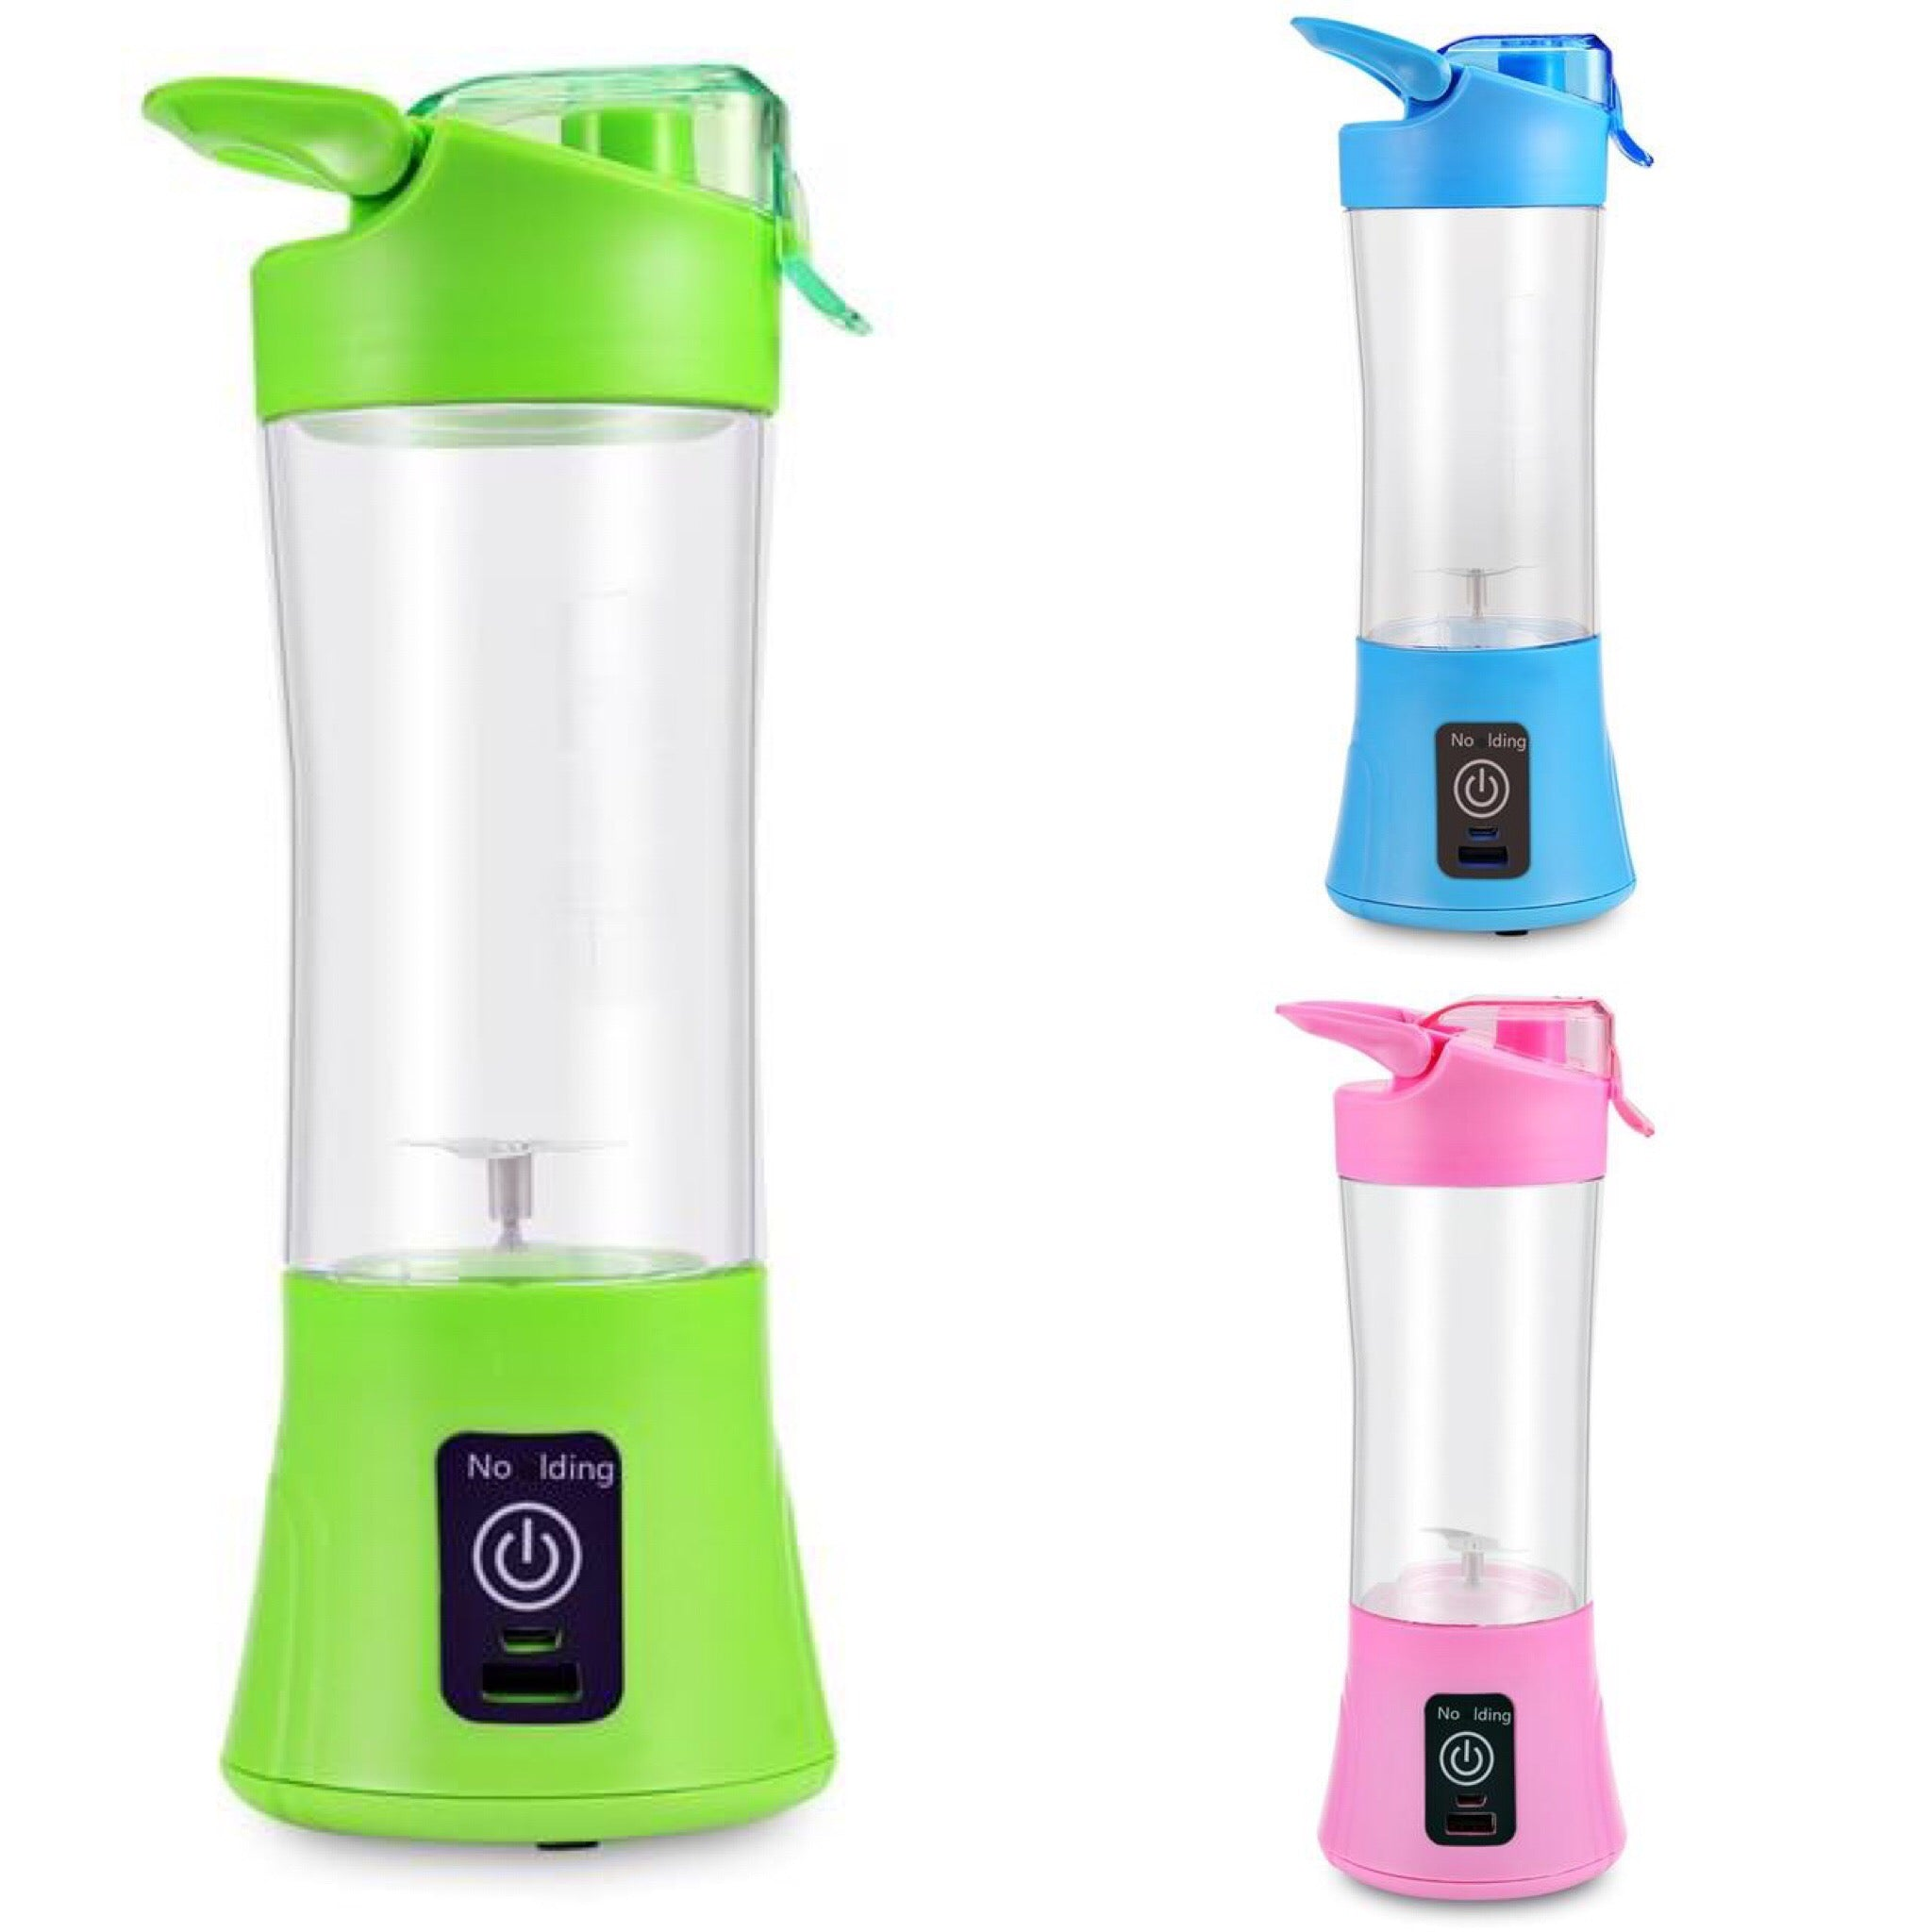 USB Portable Blender - Bundle of 3